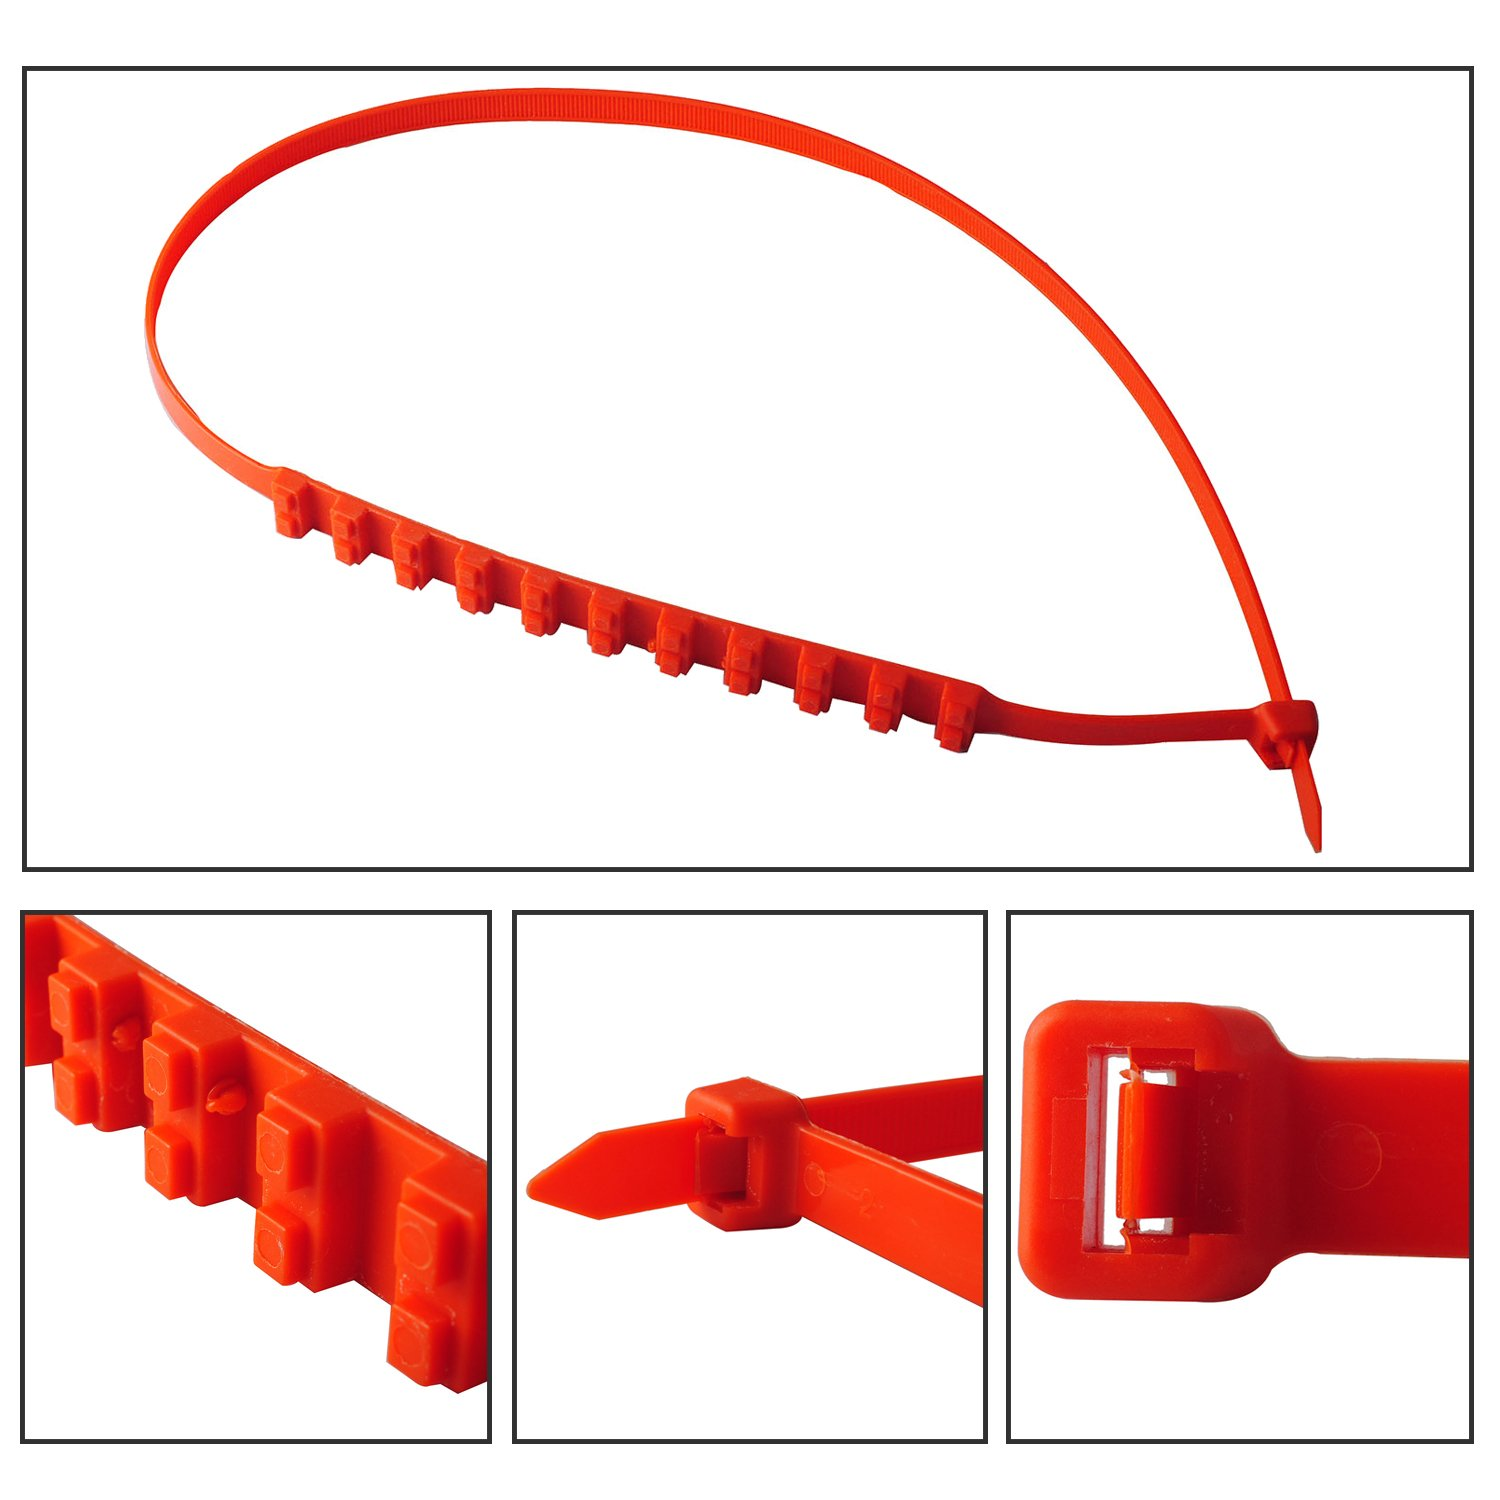 Wadoy Tire Chains Universal Winter Snow Type Portable Emergency Traction Aid Anti-Slip Chain for SUV Car Van ATV Jeep Honda Toyota Nissan VW Ford Mercede Benz BMW HTATMT Jeep Tyre 4350436029 10 PCS